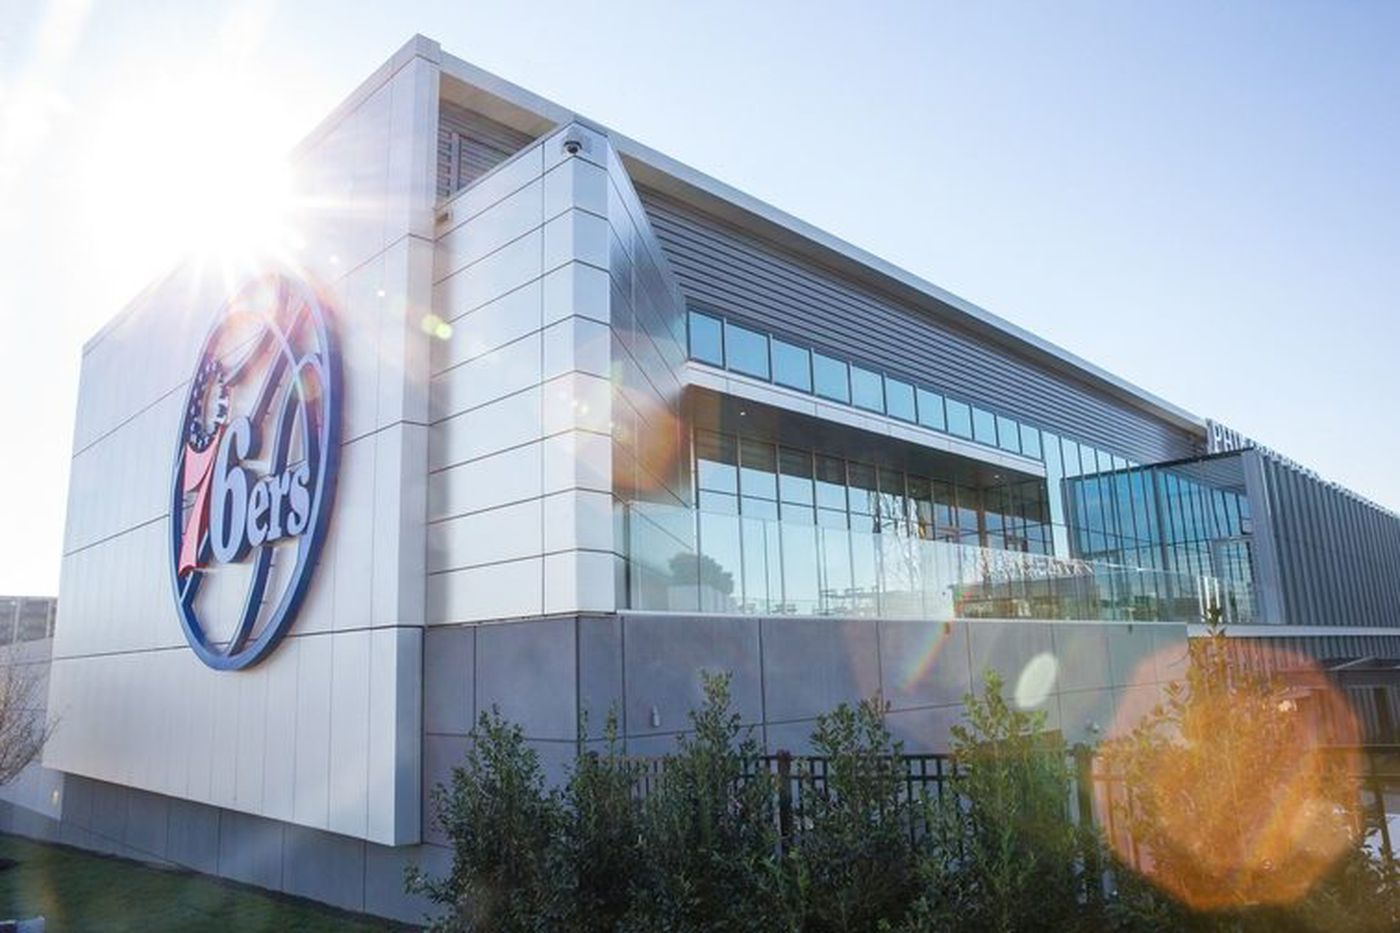 Start-ups get an assist from Sixers Innovation Lab